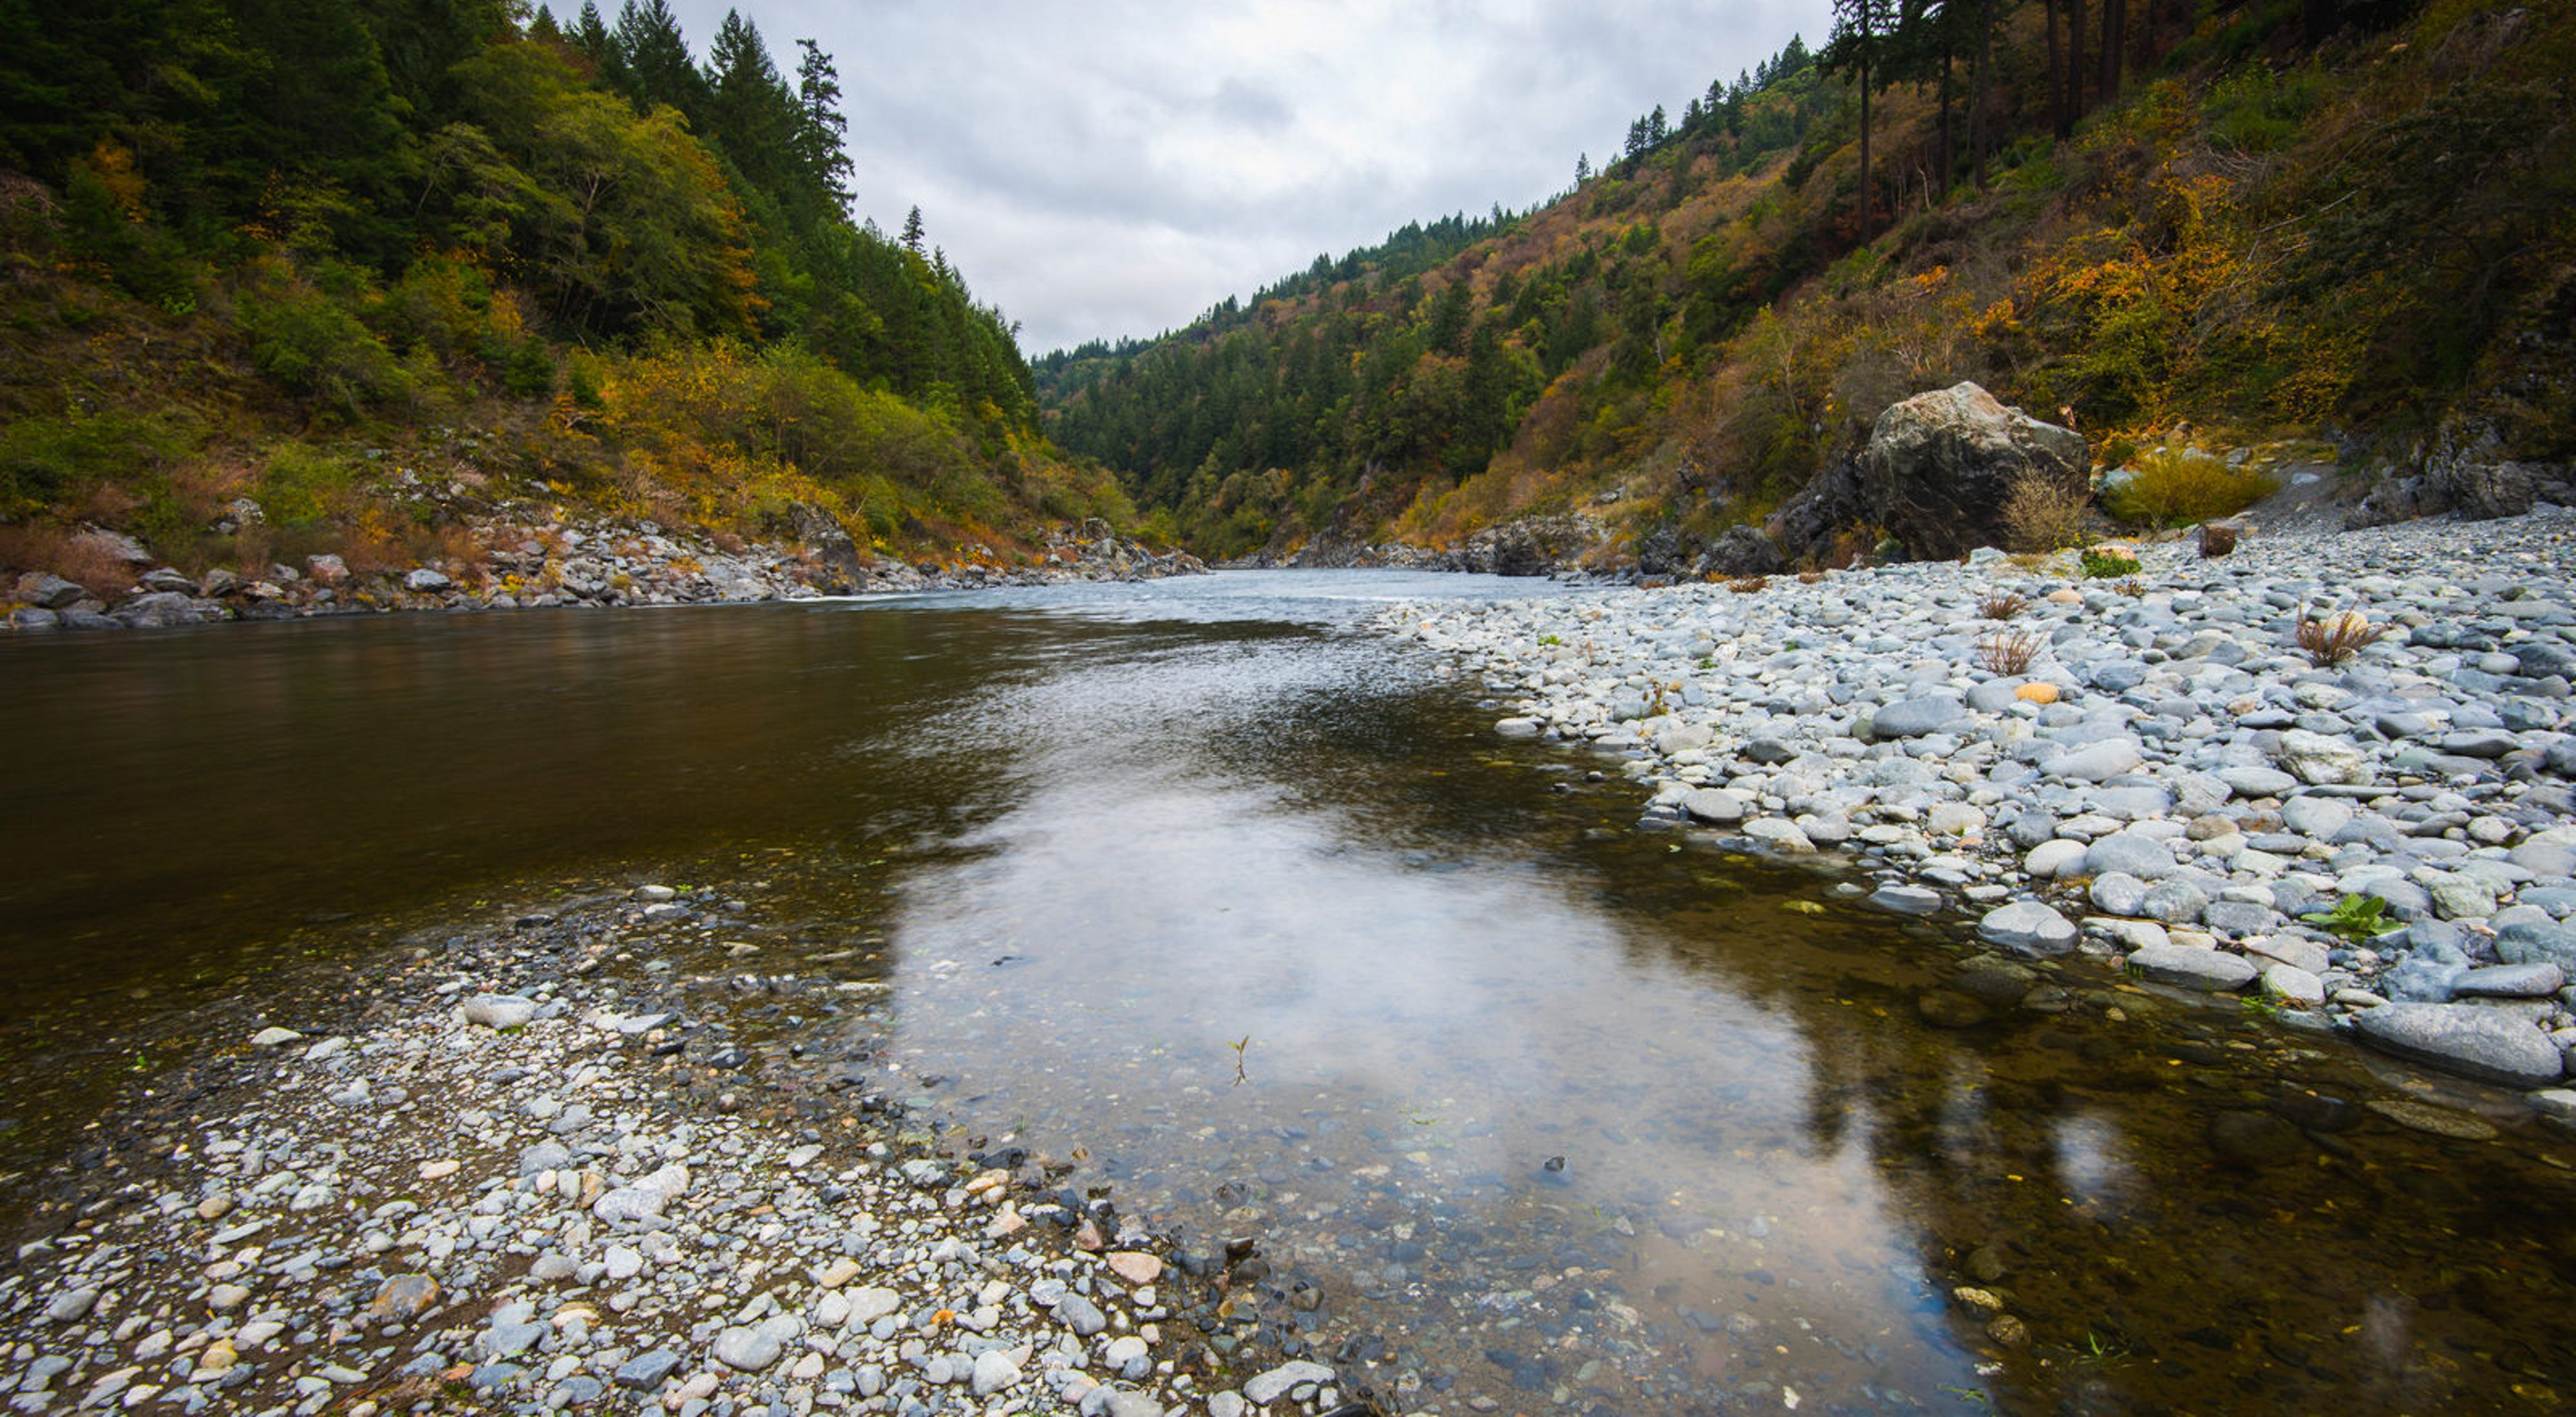 The upper Klamath River in northern California.